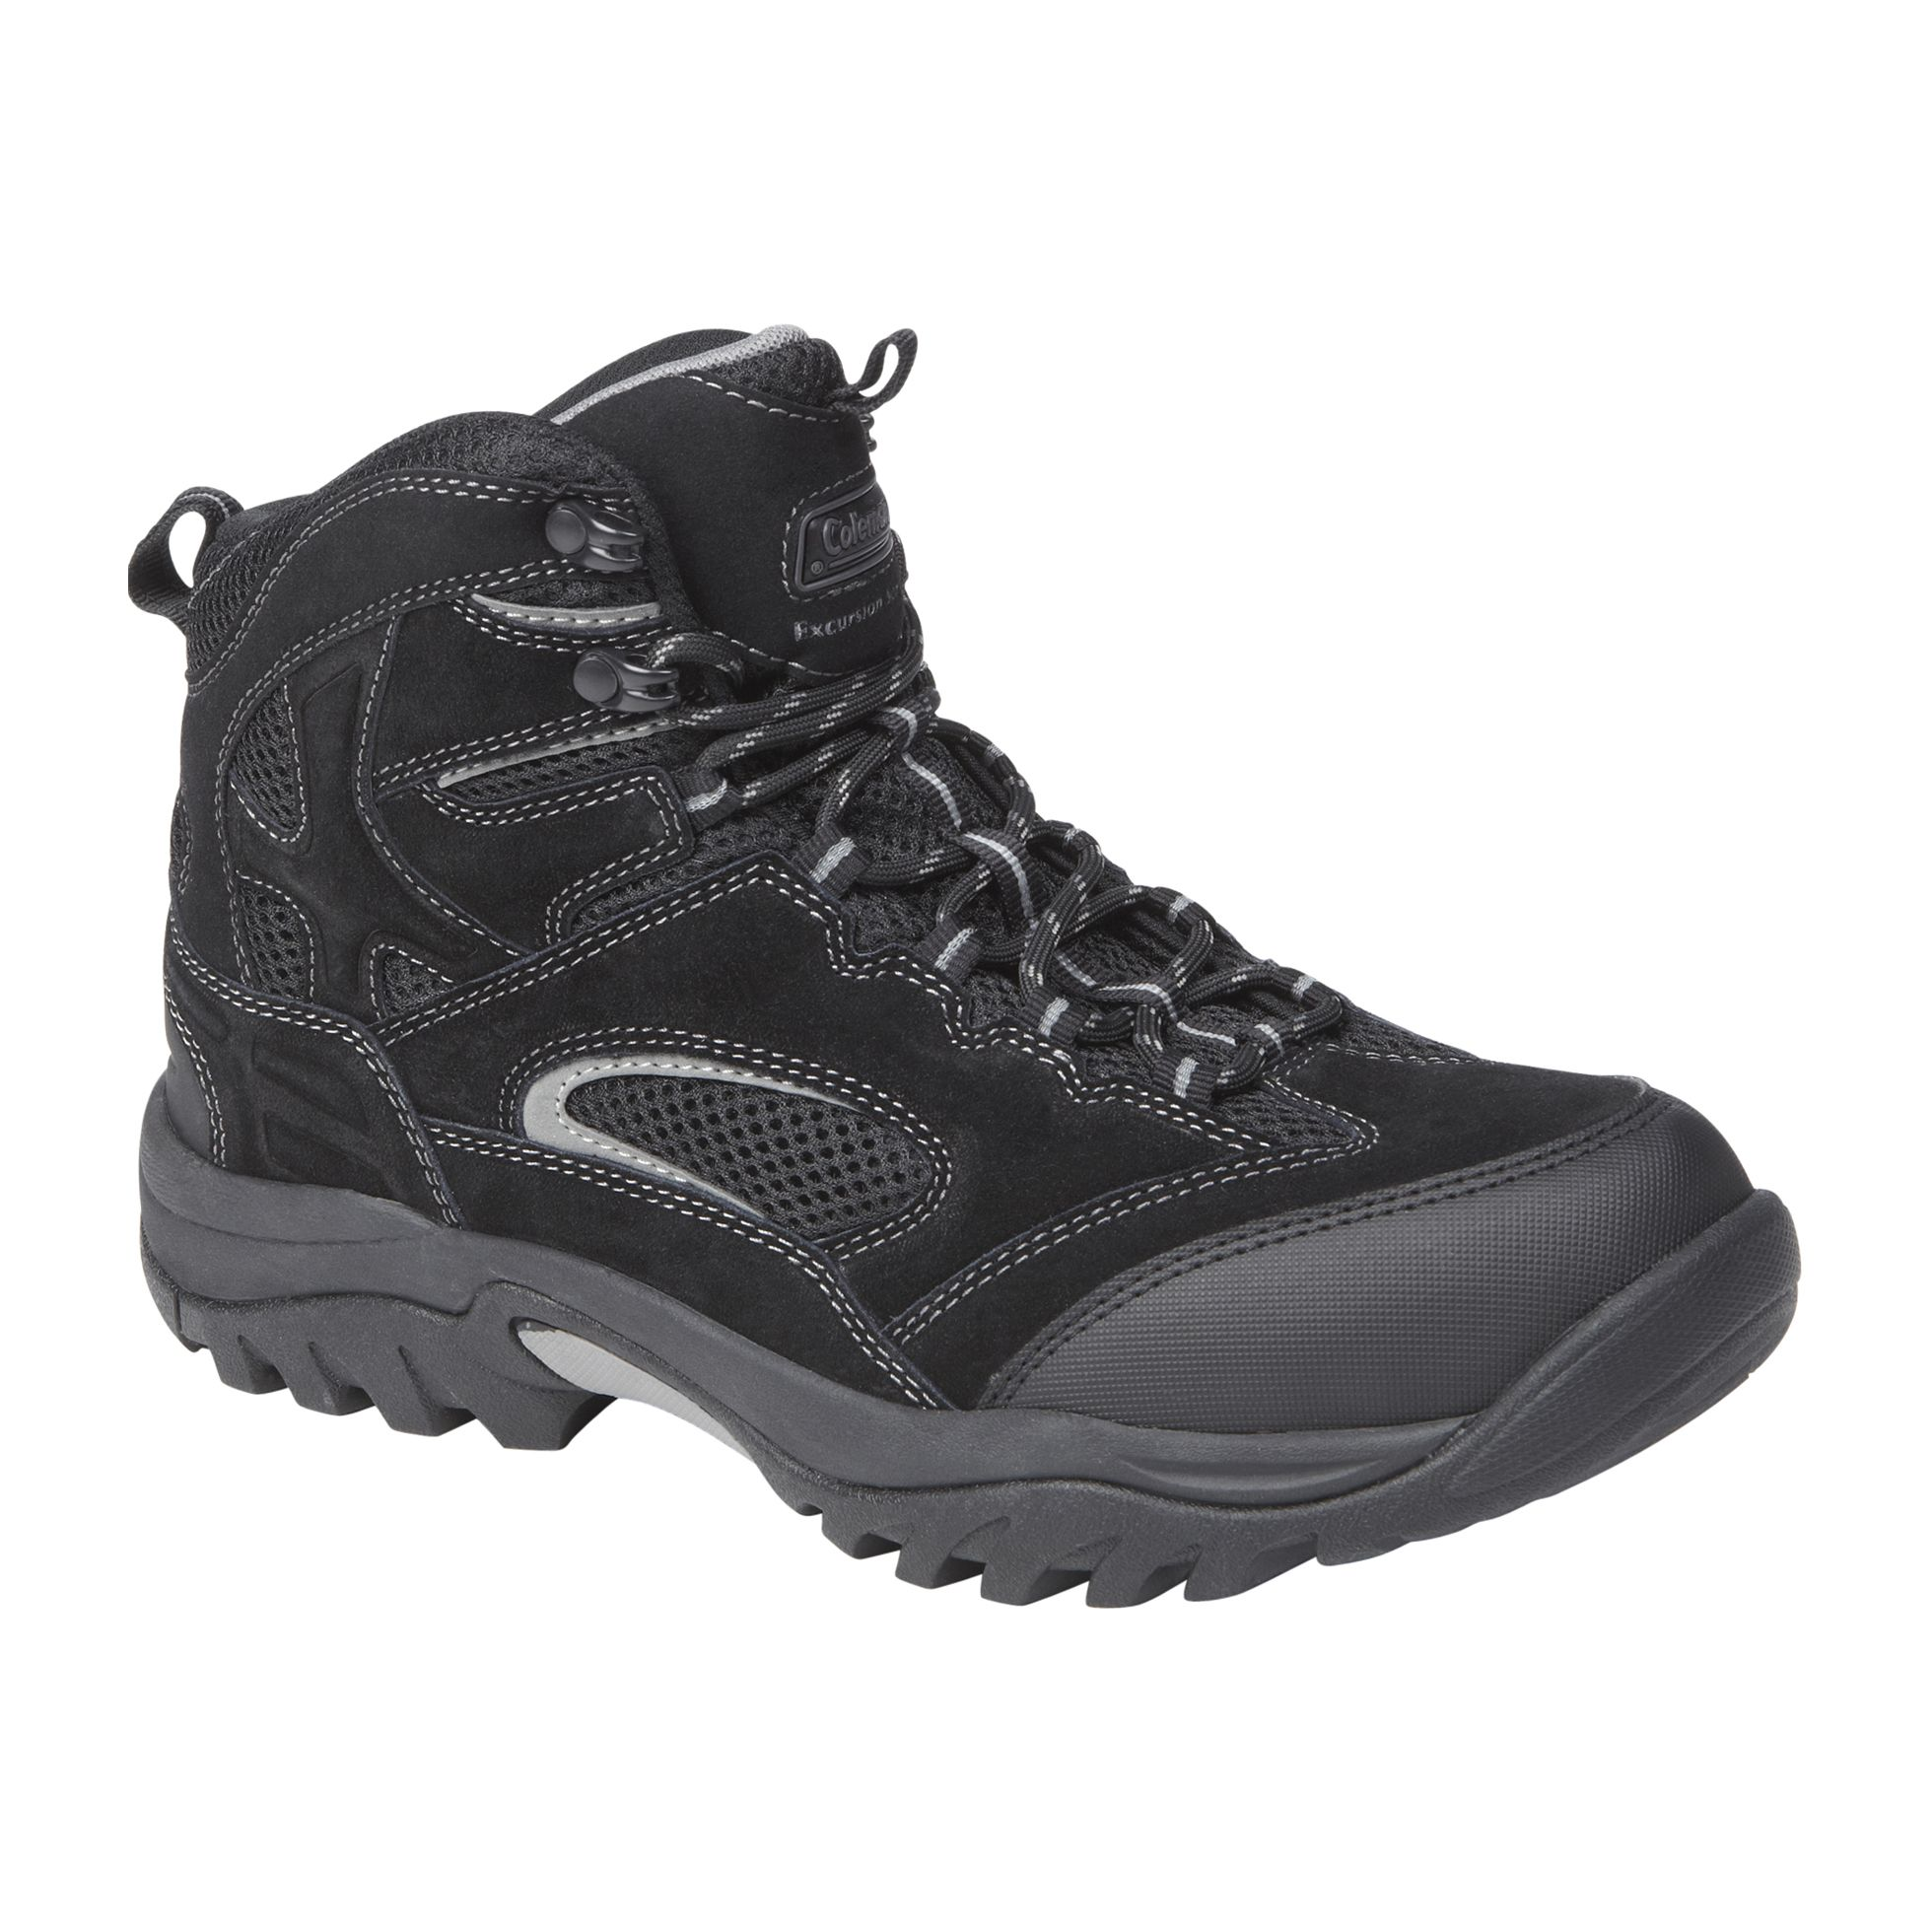 Men's Karter2 Mid Hiker - Black